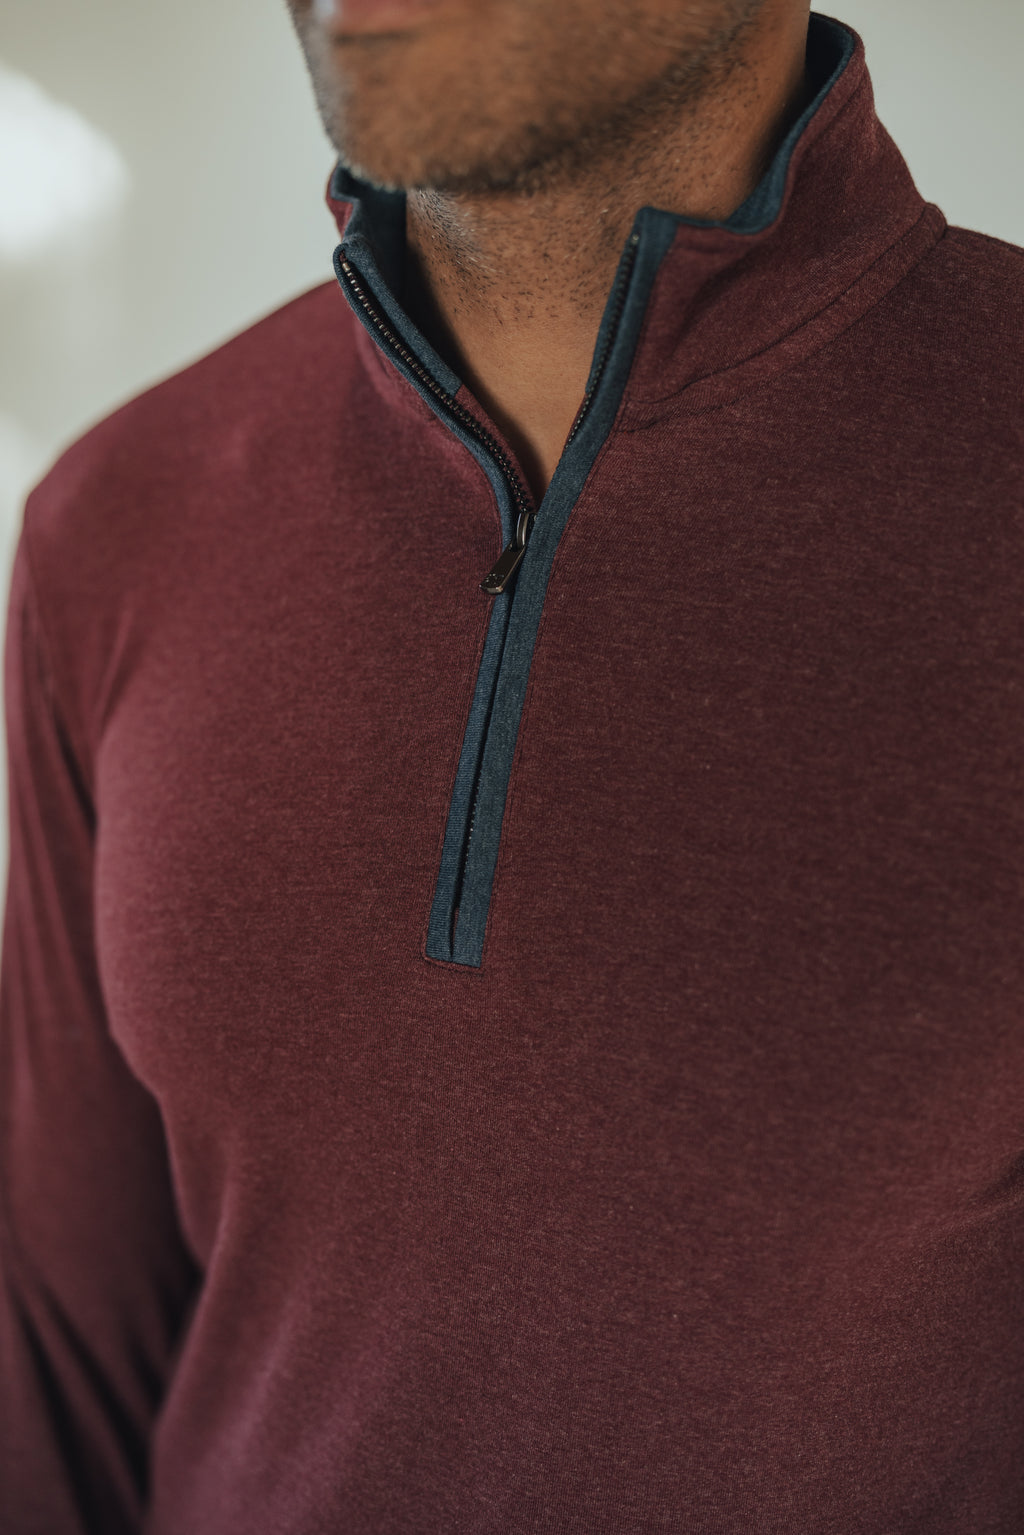 THE NORMAL BRAND PUREMESO QUARTER ZIP PULLOVER